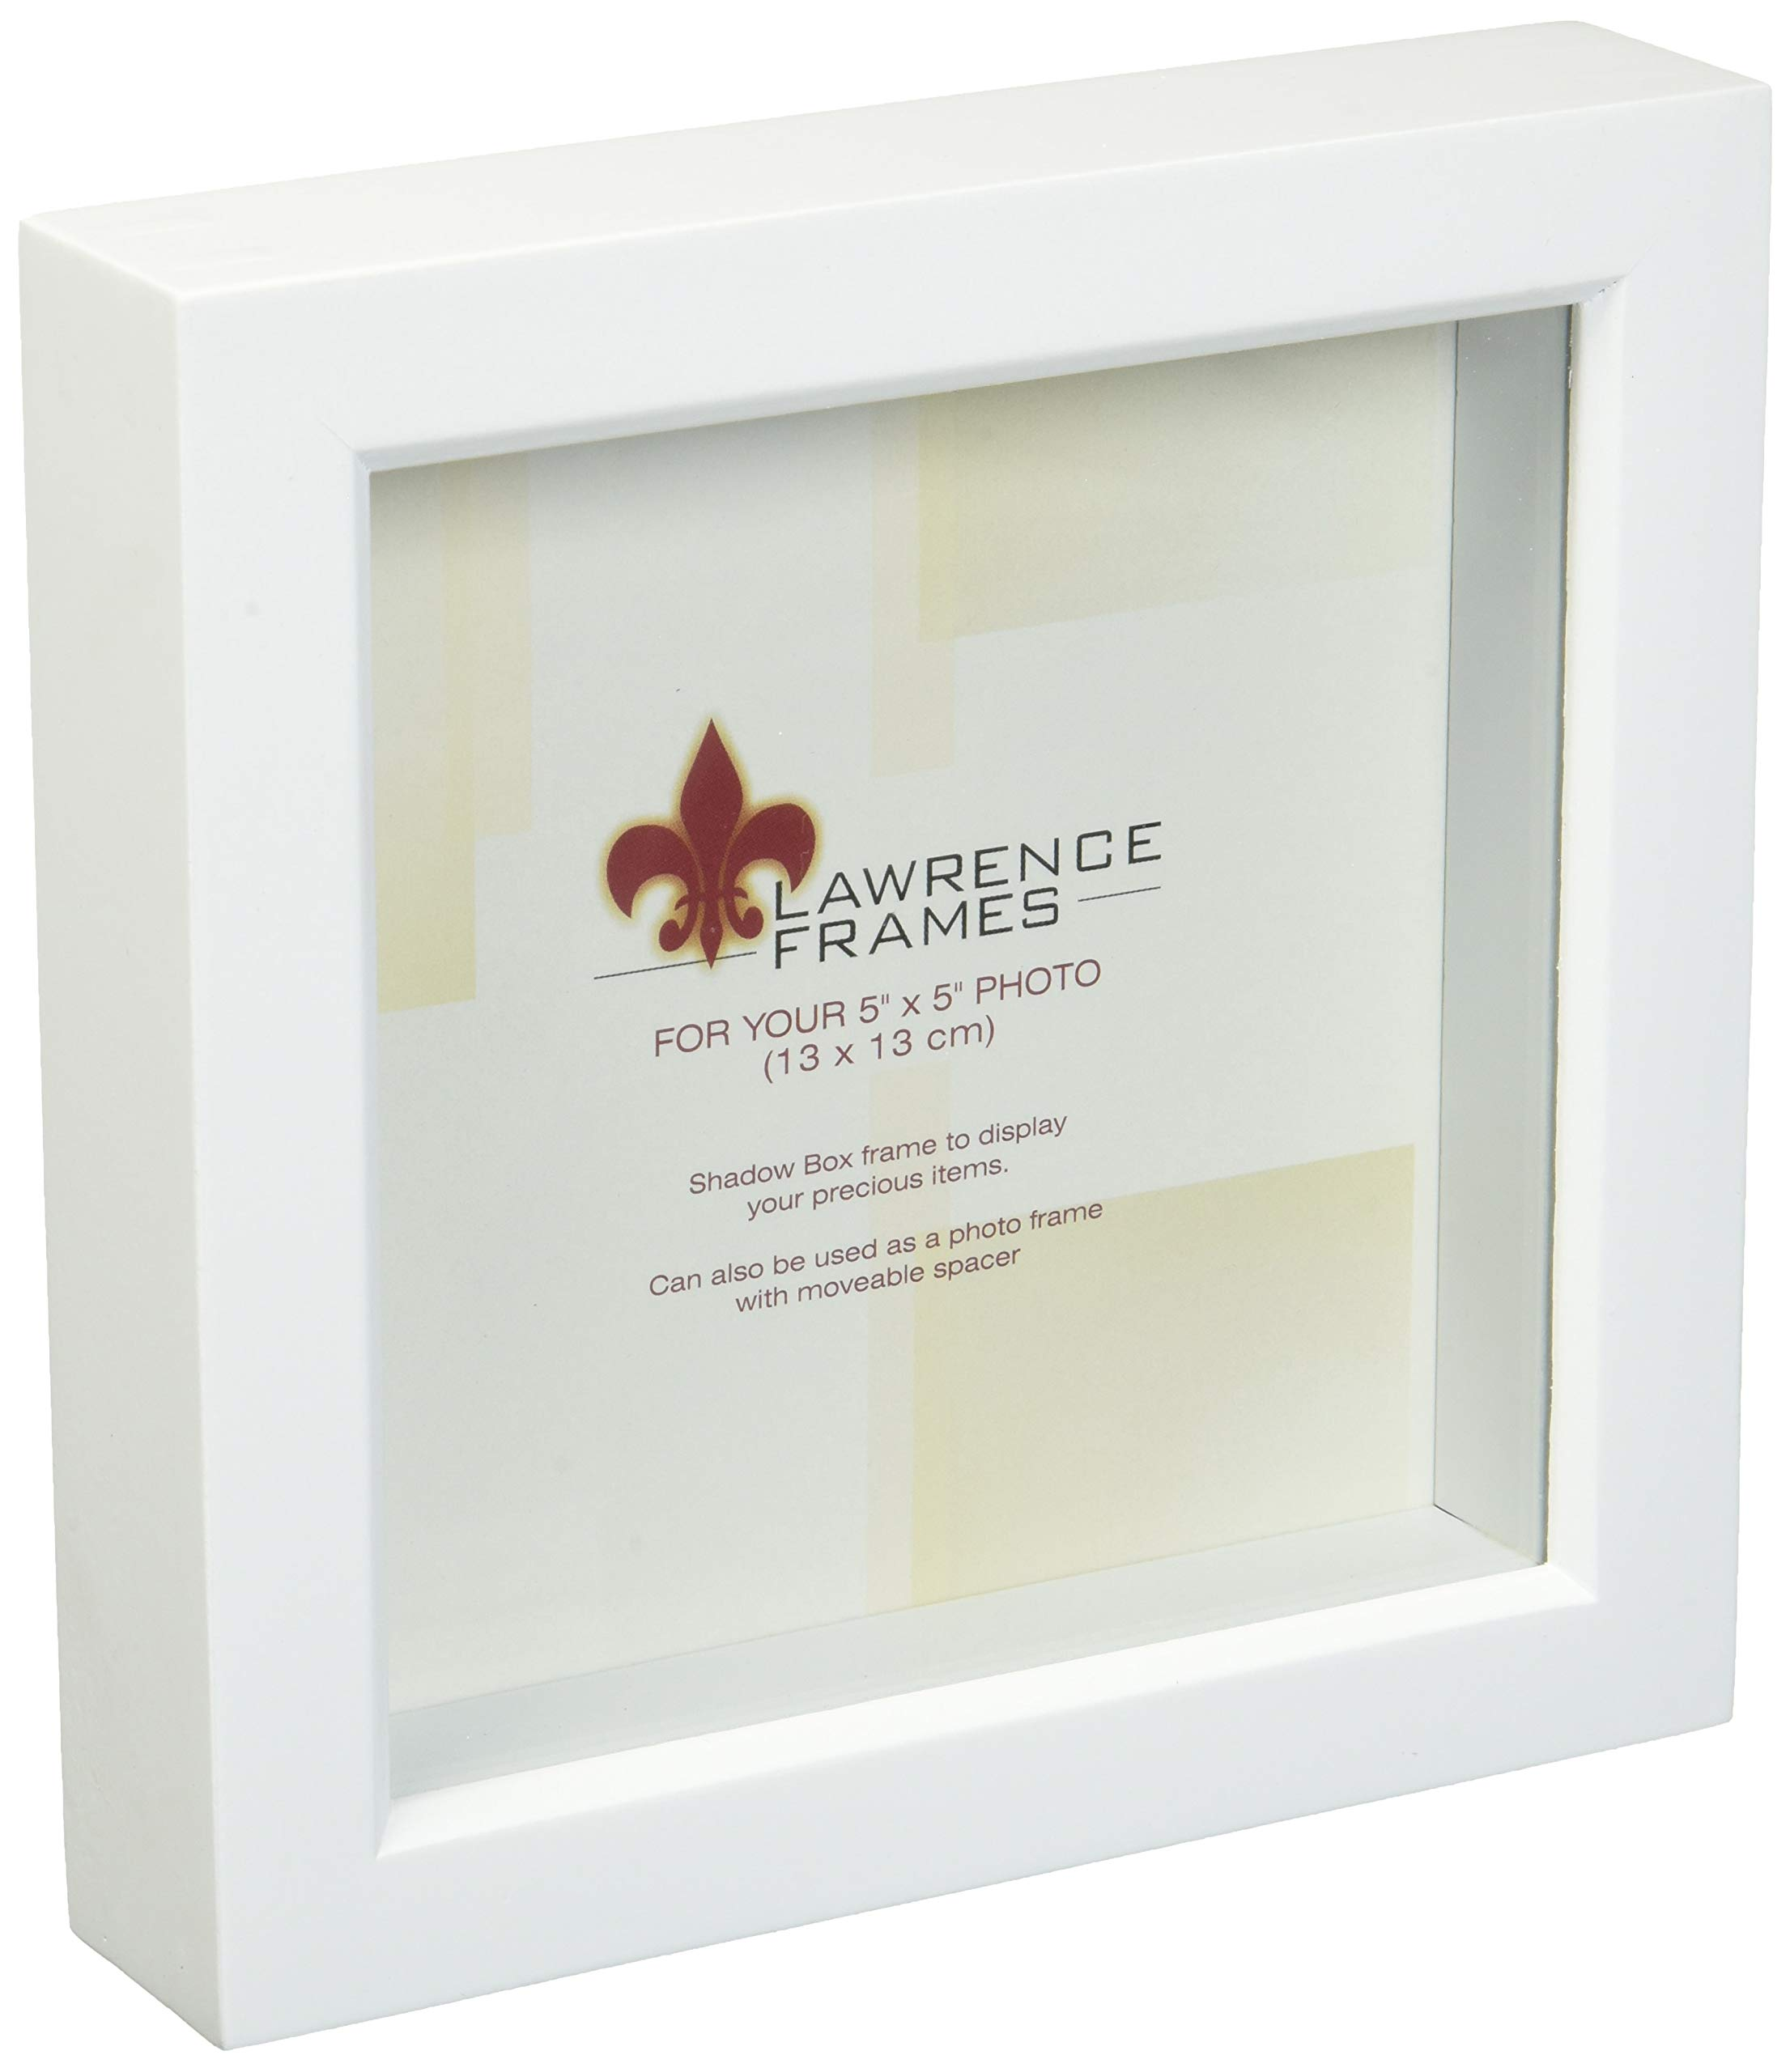 Lawrence Frames 795255 Wood Treasure Shadow Box Picture Frame, 5 X 5 Inch, White by Lawrence Frames